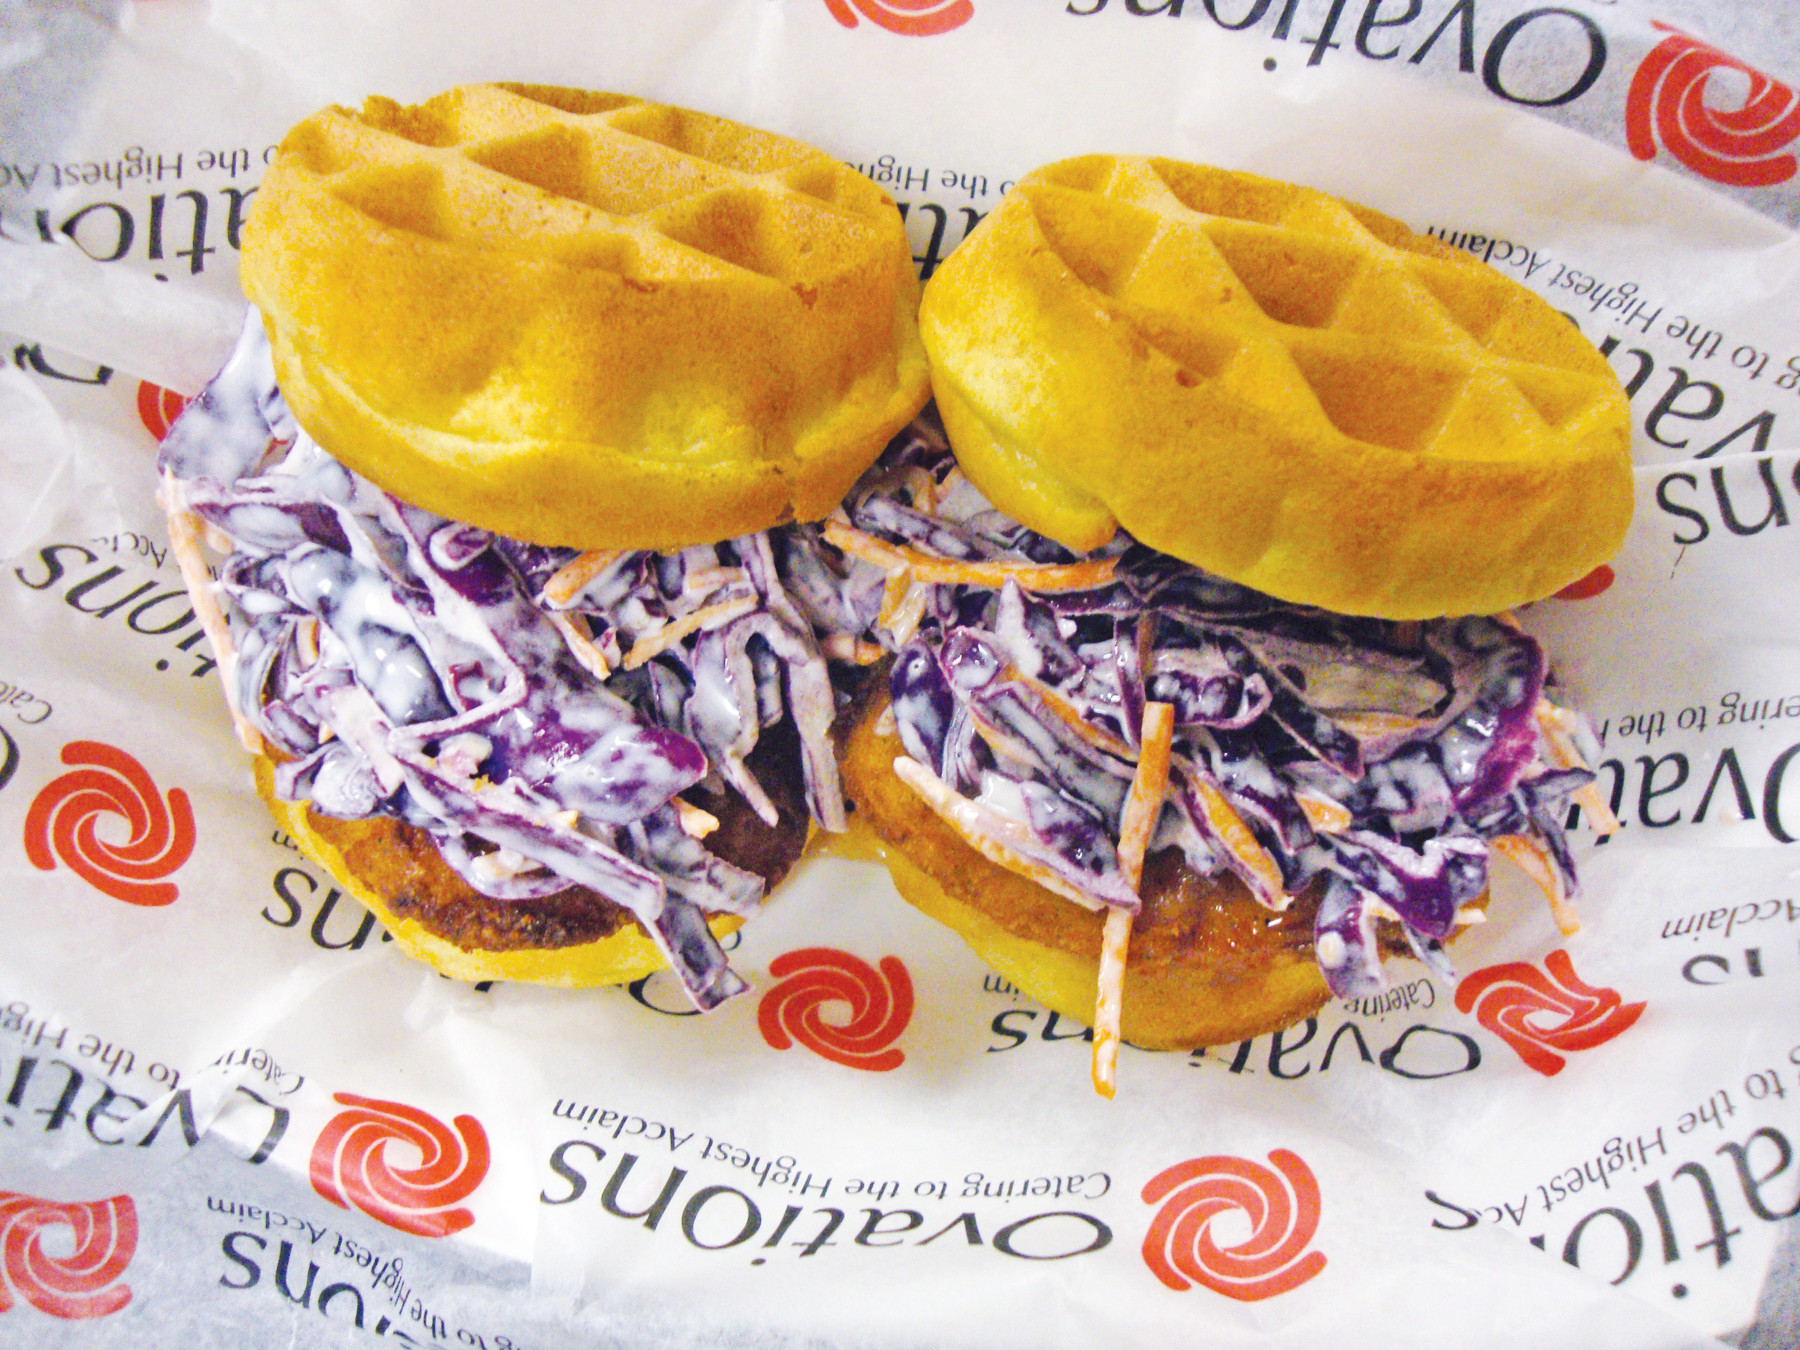 Golden Belgian waffles are topped with a hunk of fried white-meat chicken breast, a sweet-and-spicy red cabbage slaw and touch of tangy Krystal hot sauce and honey.